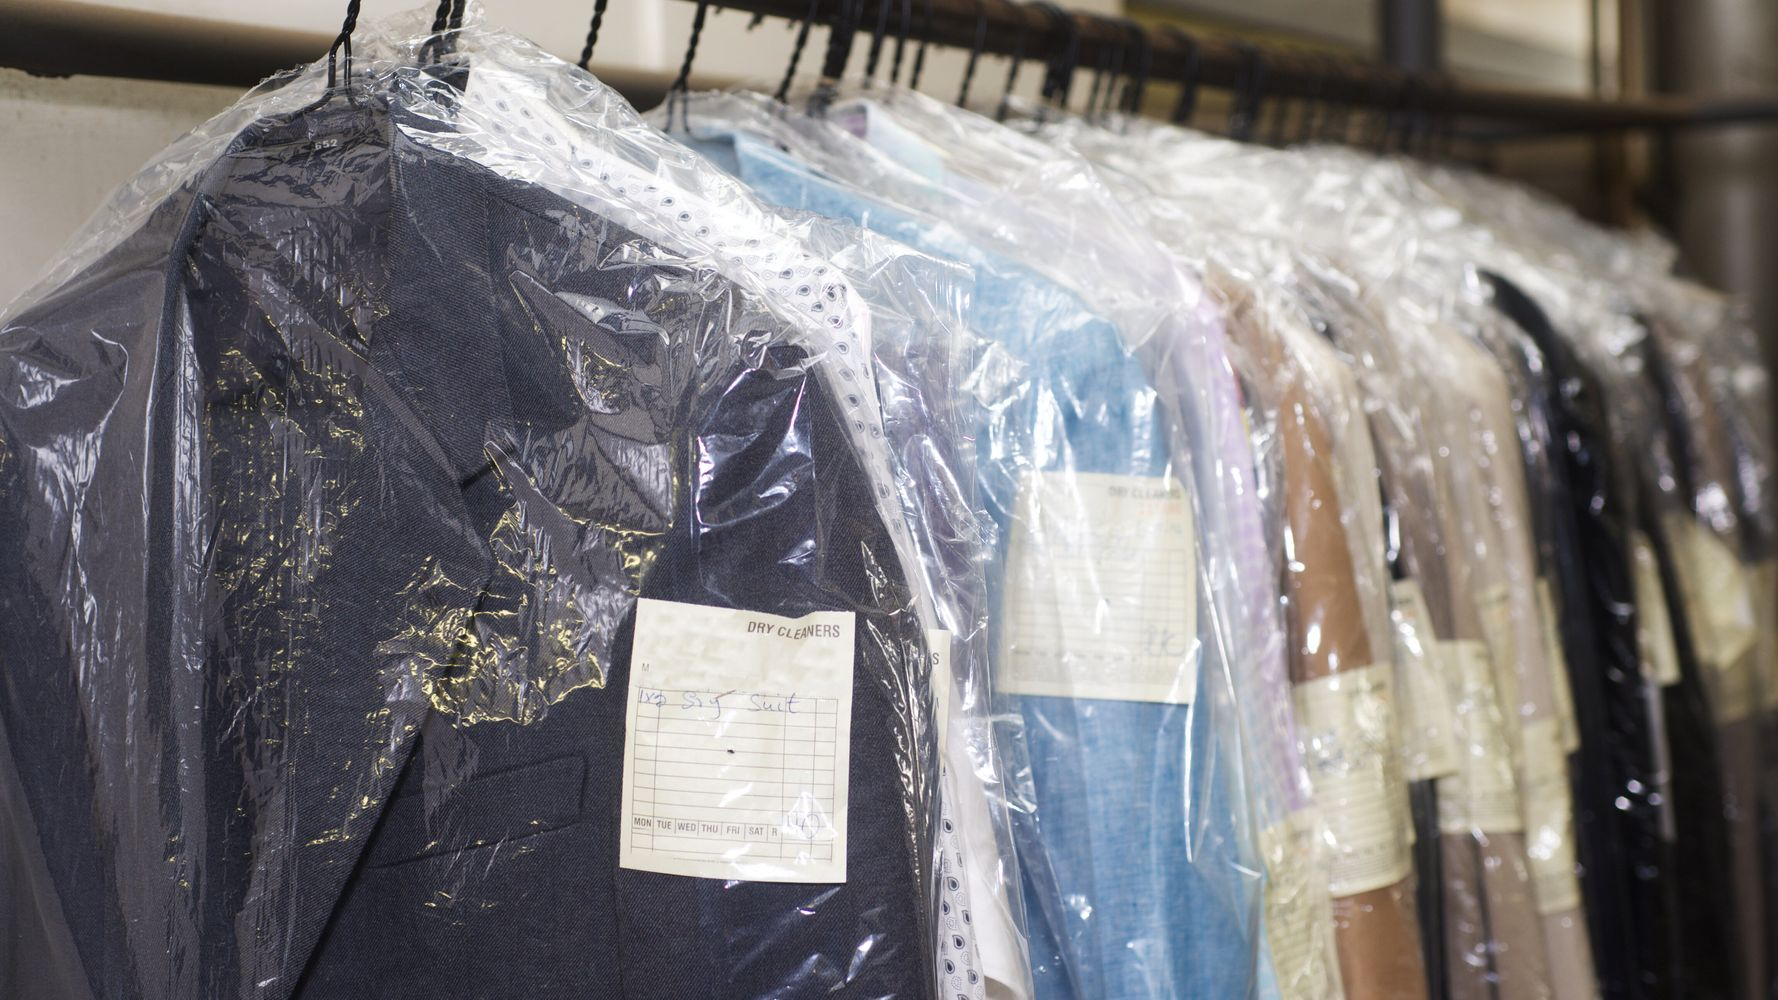 Does Dry Cleaning Kill COVID-19 On Clothing?